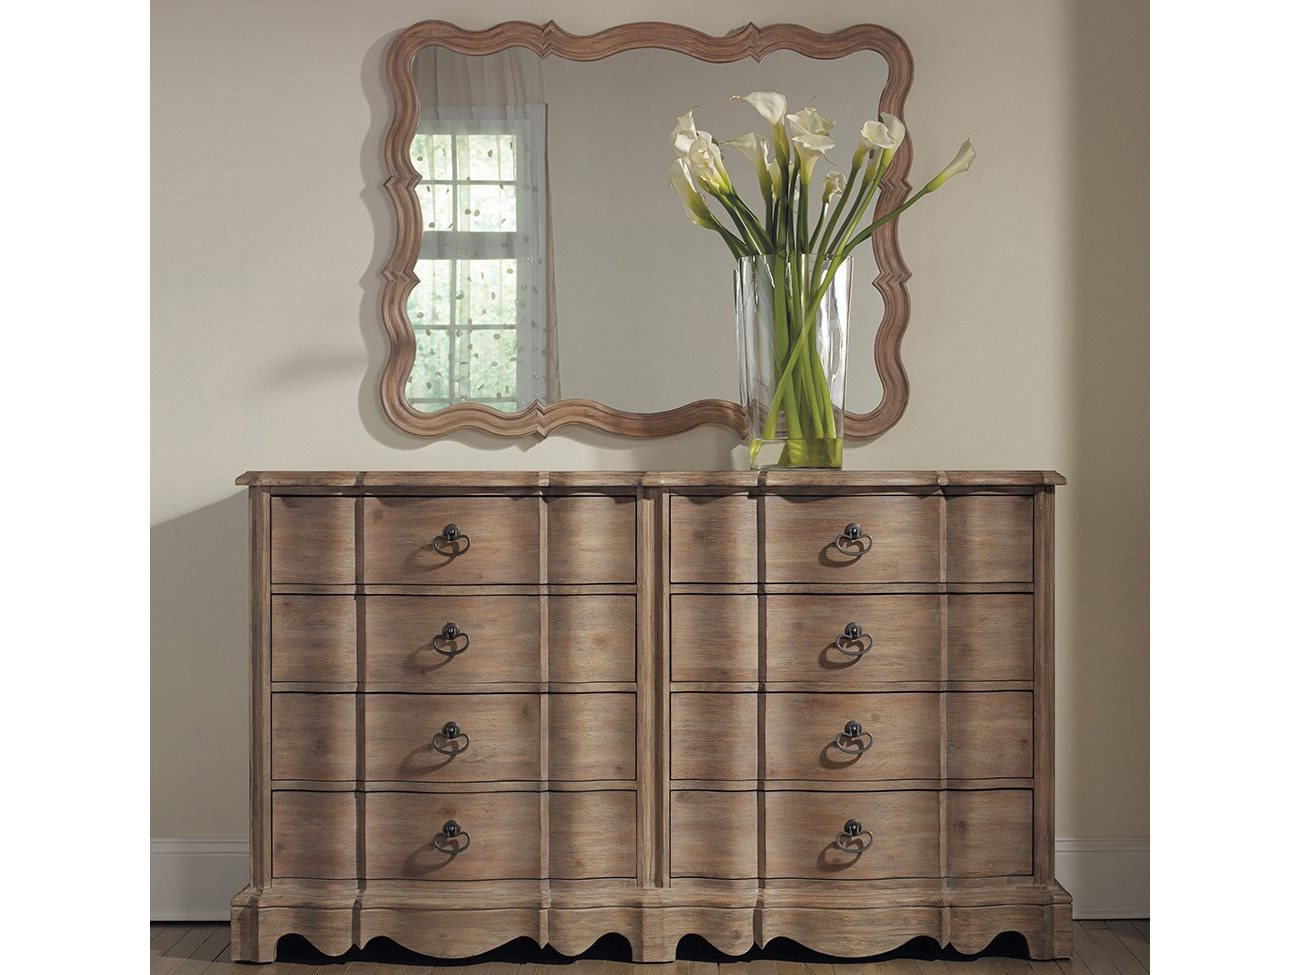 Hooker Furniture Corsica Light Wood Double Dresser  : HOO5180900024zm from www.luxedecor.com size 1300 x 975 jpeg 164kB